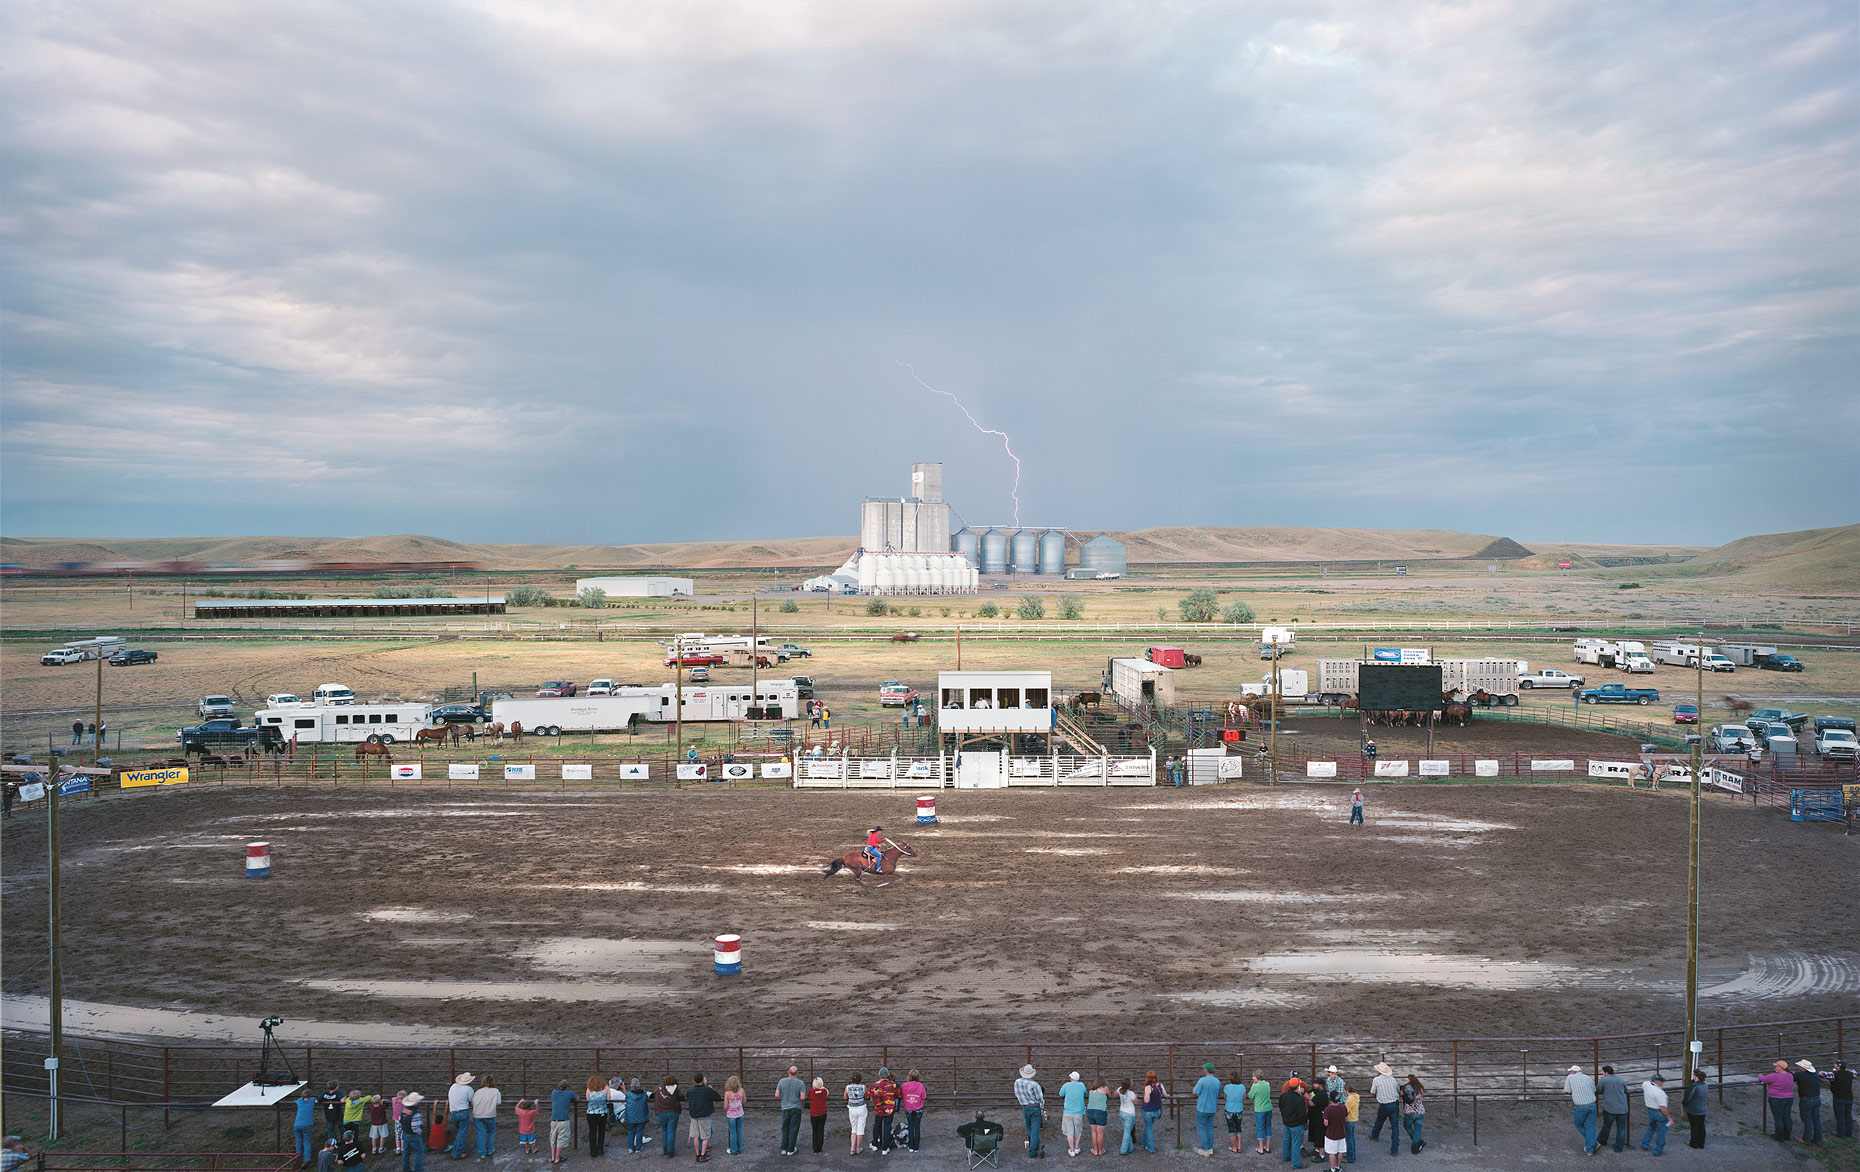 Marias Stampede in Shelby, Montana